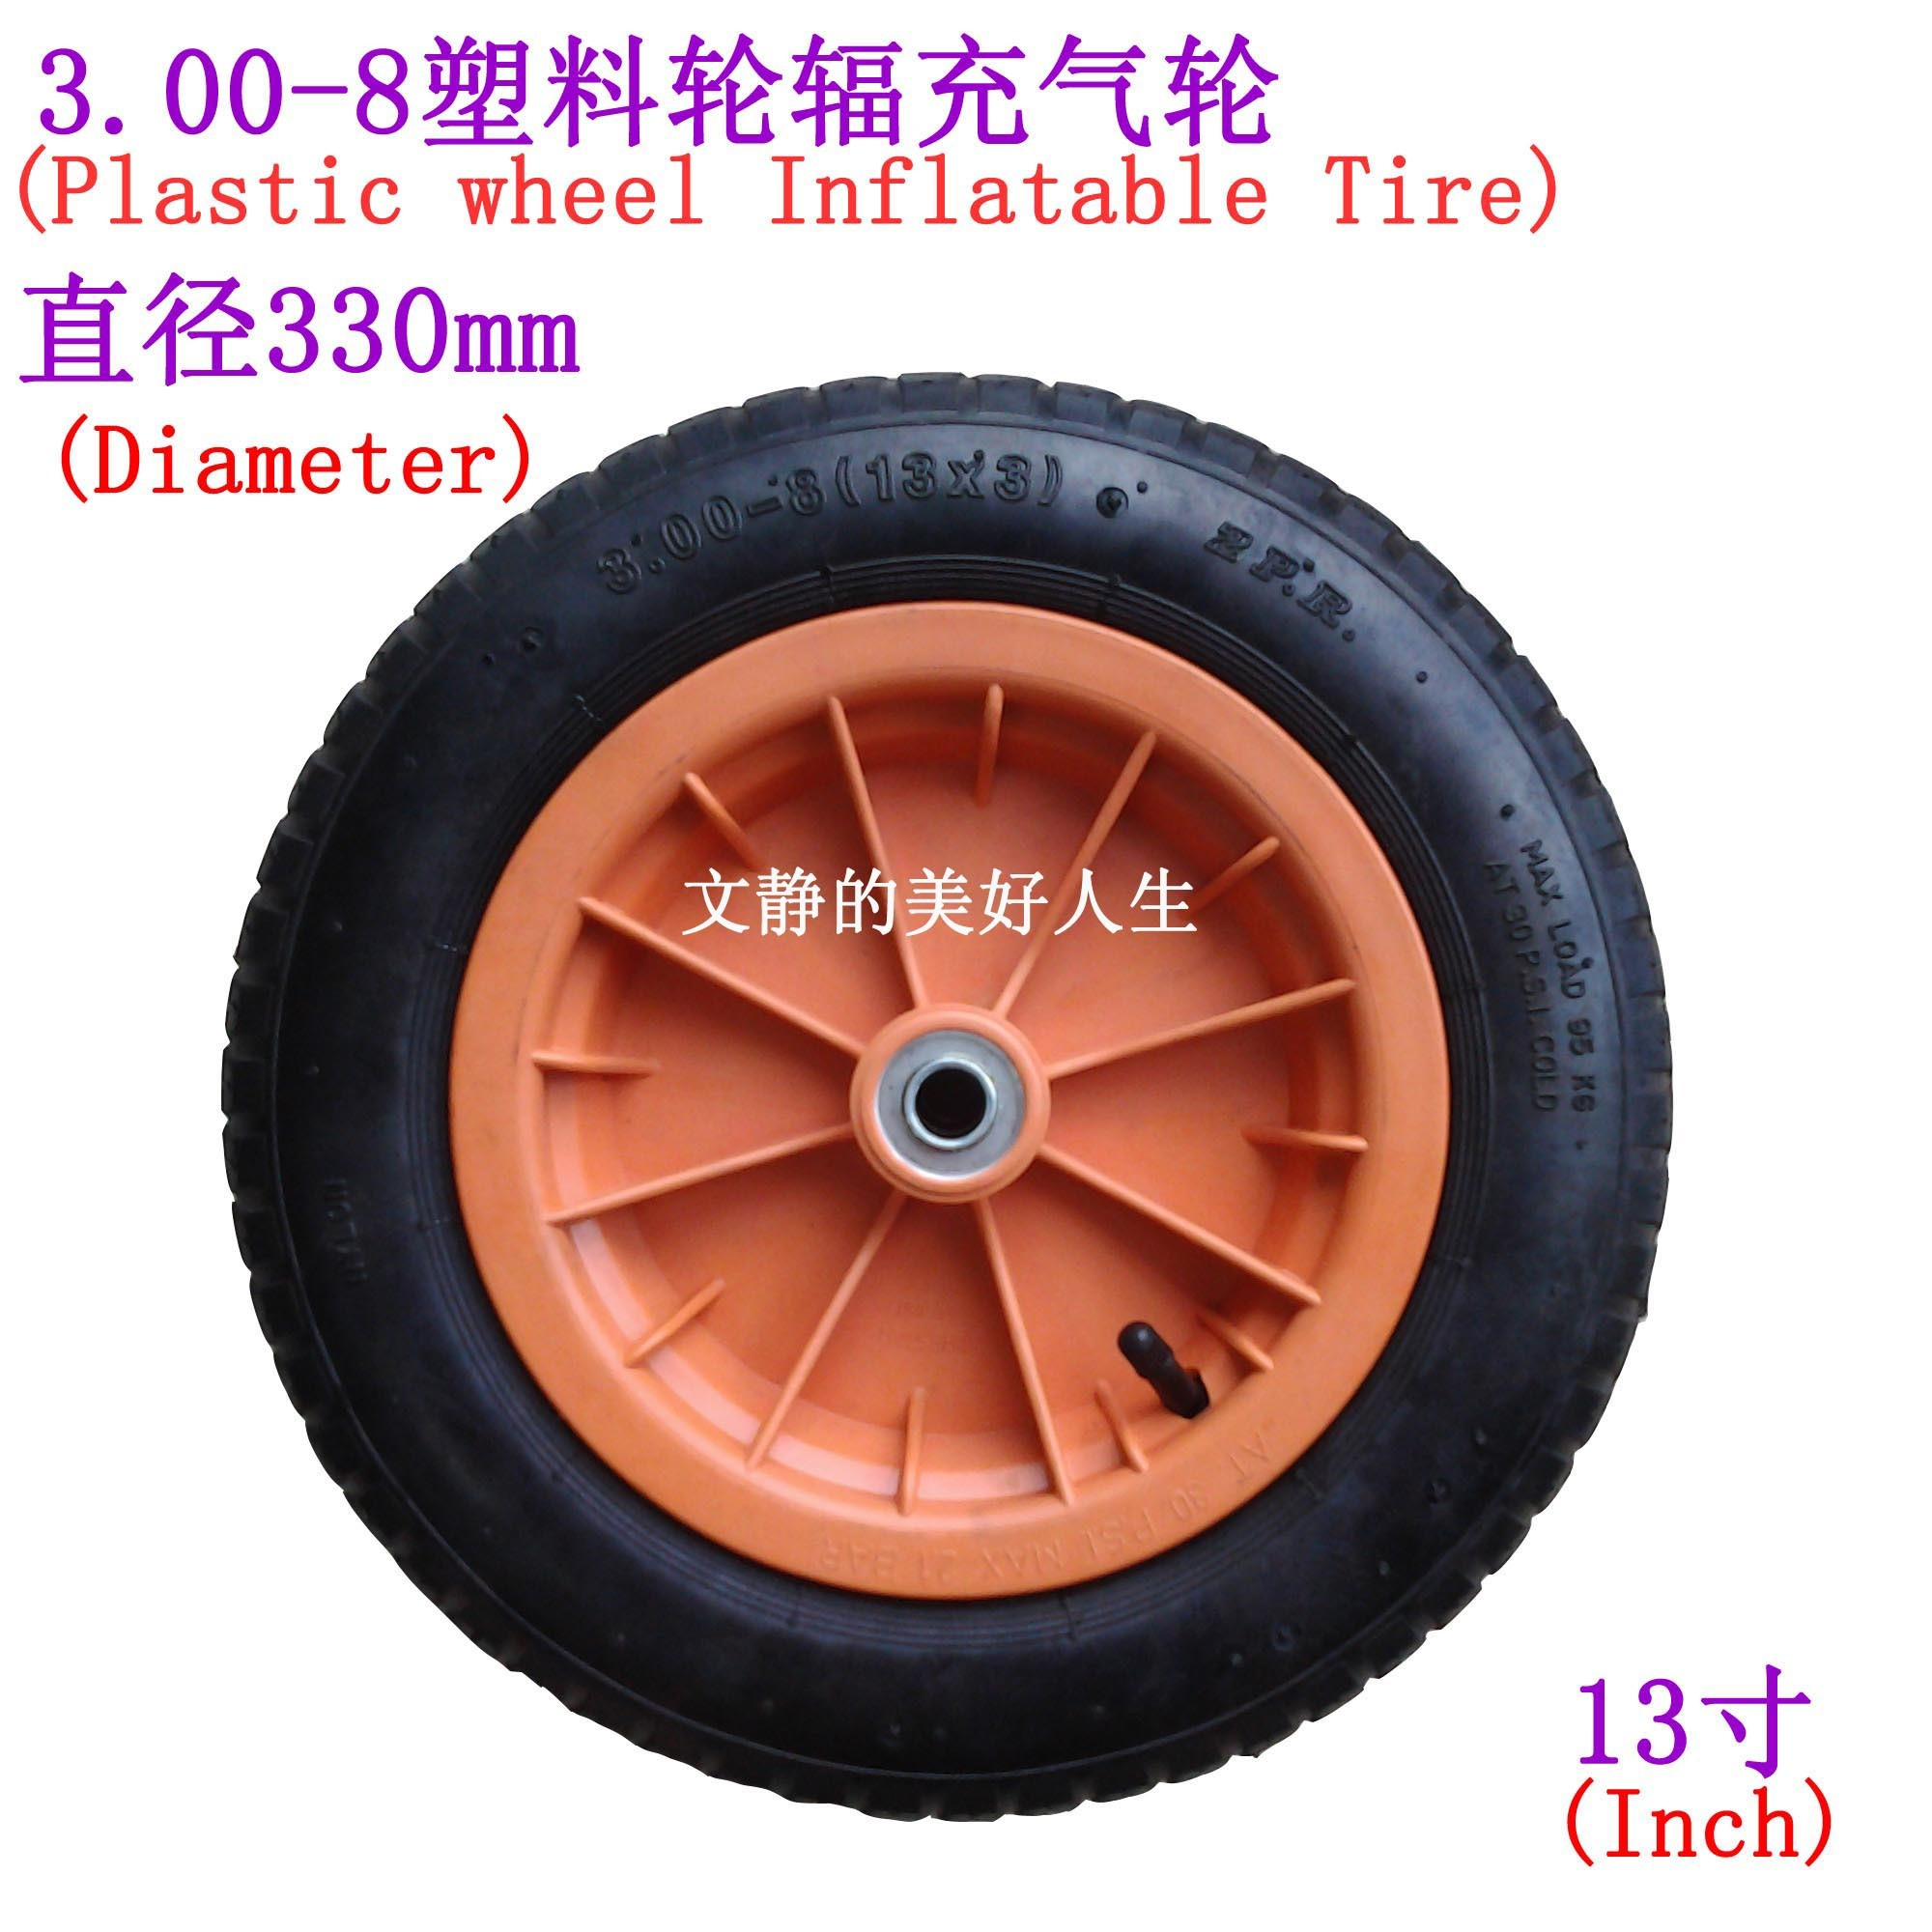 13 Inch 3.00-8 Inflatable Tire Wheel Barrow Tire Plastic Wheel